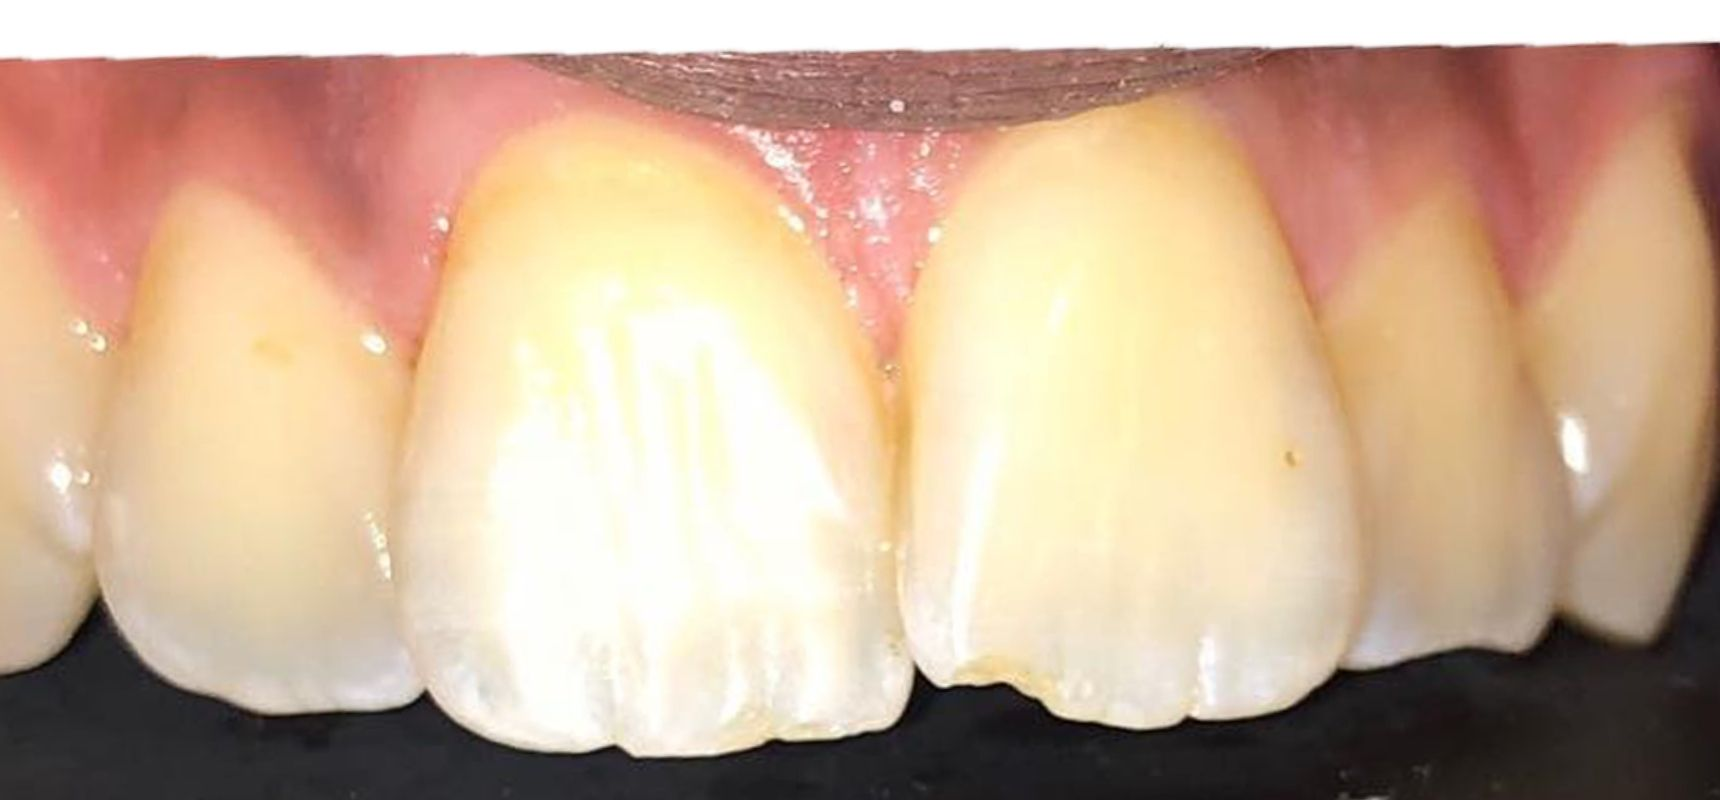 After-Polishing of front teeth